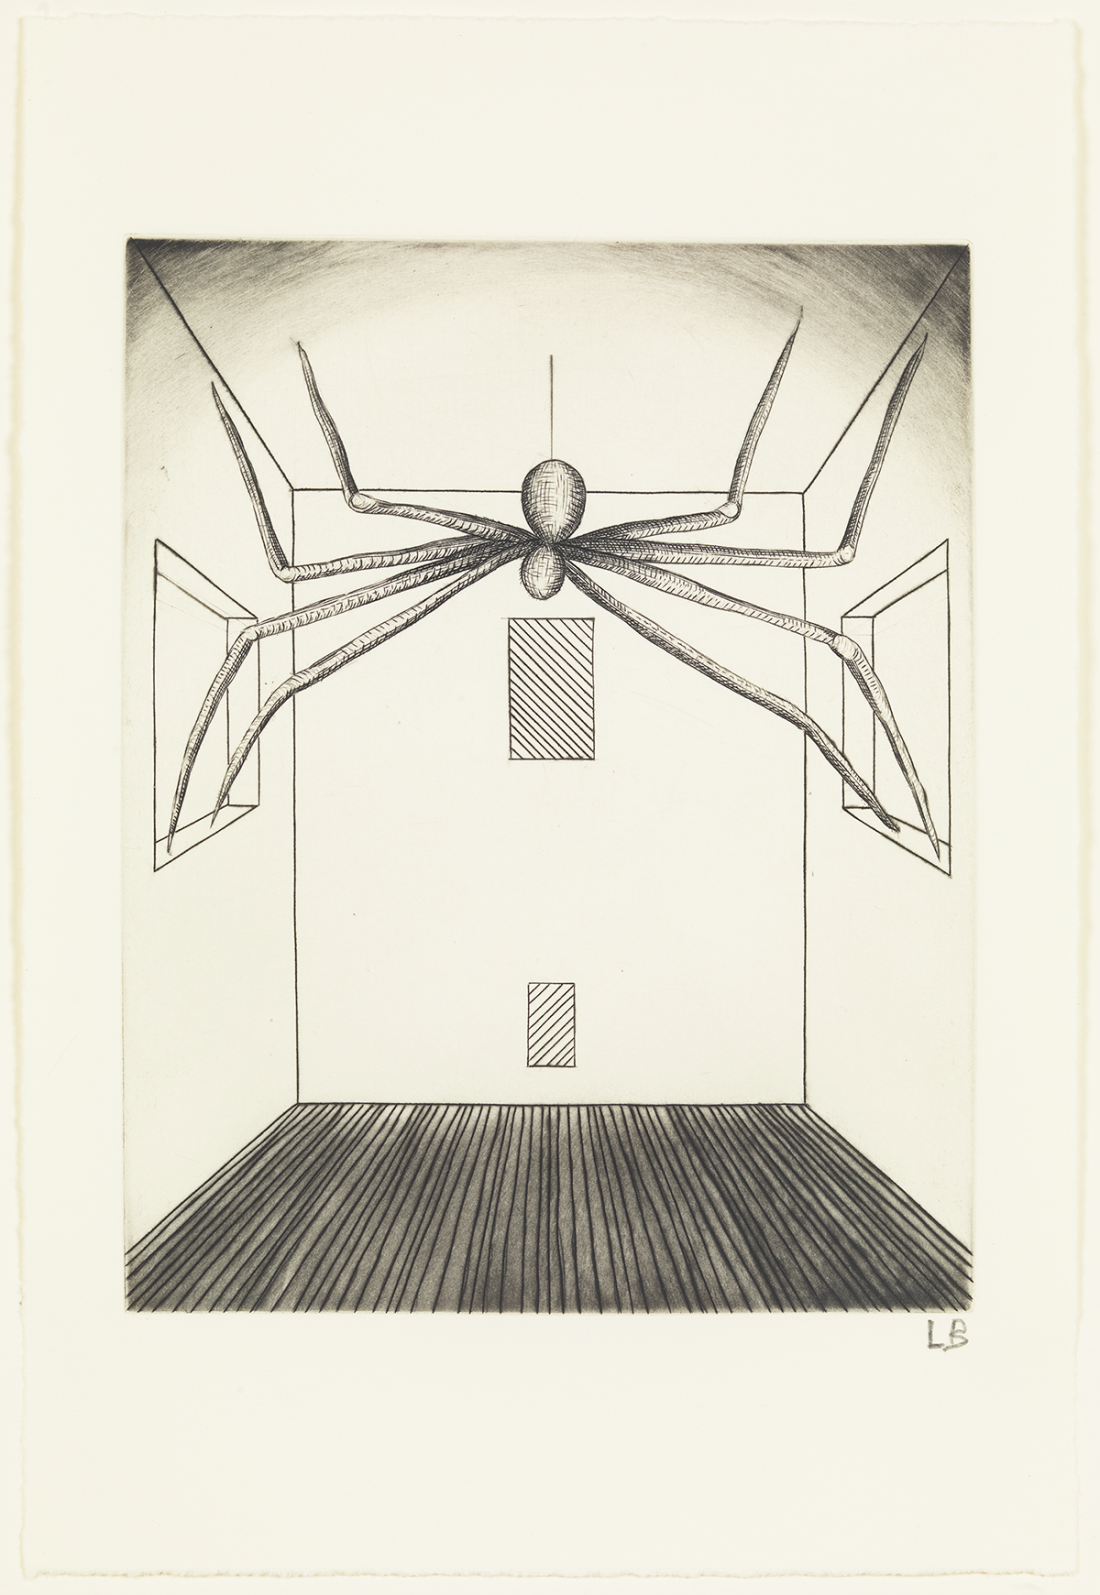 Louise Bourgeois He Disappeared Into Complete Silence, 1947 – 2005 (Detail) Suite of 11 engravings with aquatint and hand colouring accompanied by letterpress text, Plates 1 – 9: 25.4 × 35.6 cm, Alternative and Spider plates: 25.4 × 17.1 cm. © Easton Foundation/DACS, London/VAGA, NY 2018. Collection: The Easton Foundation.